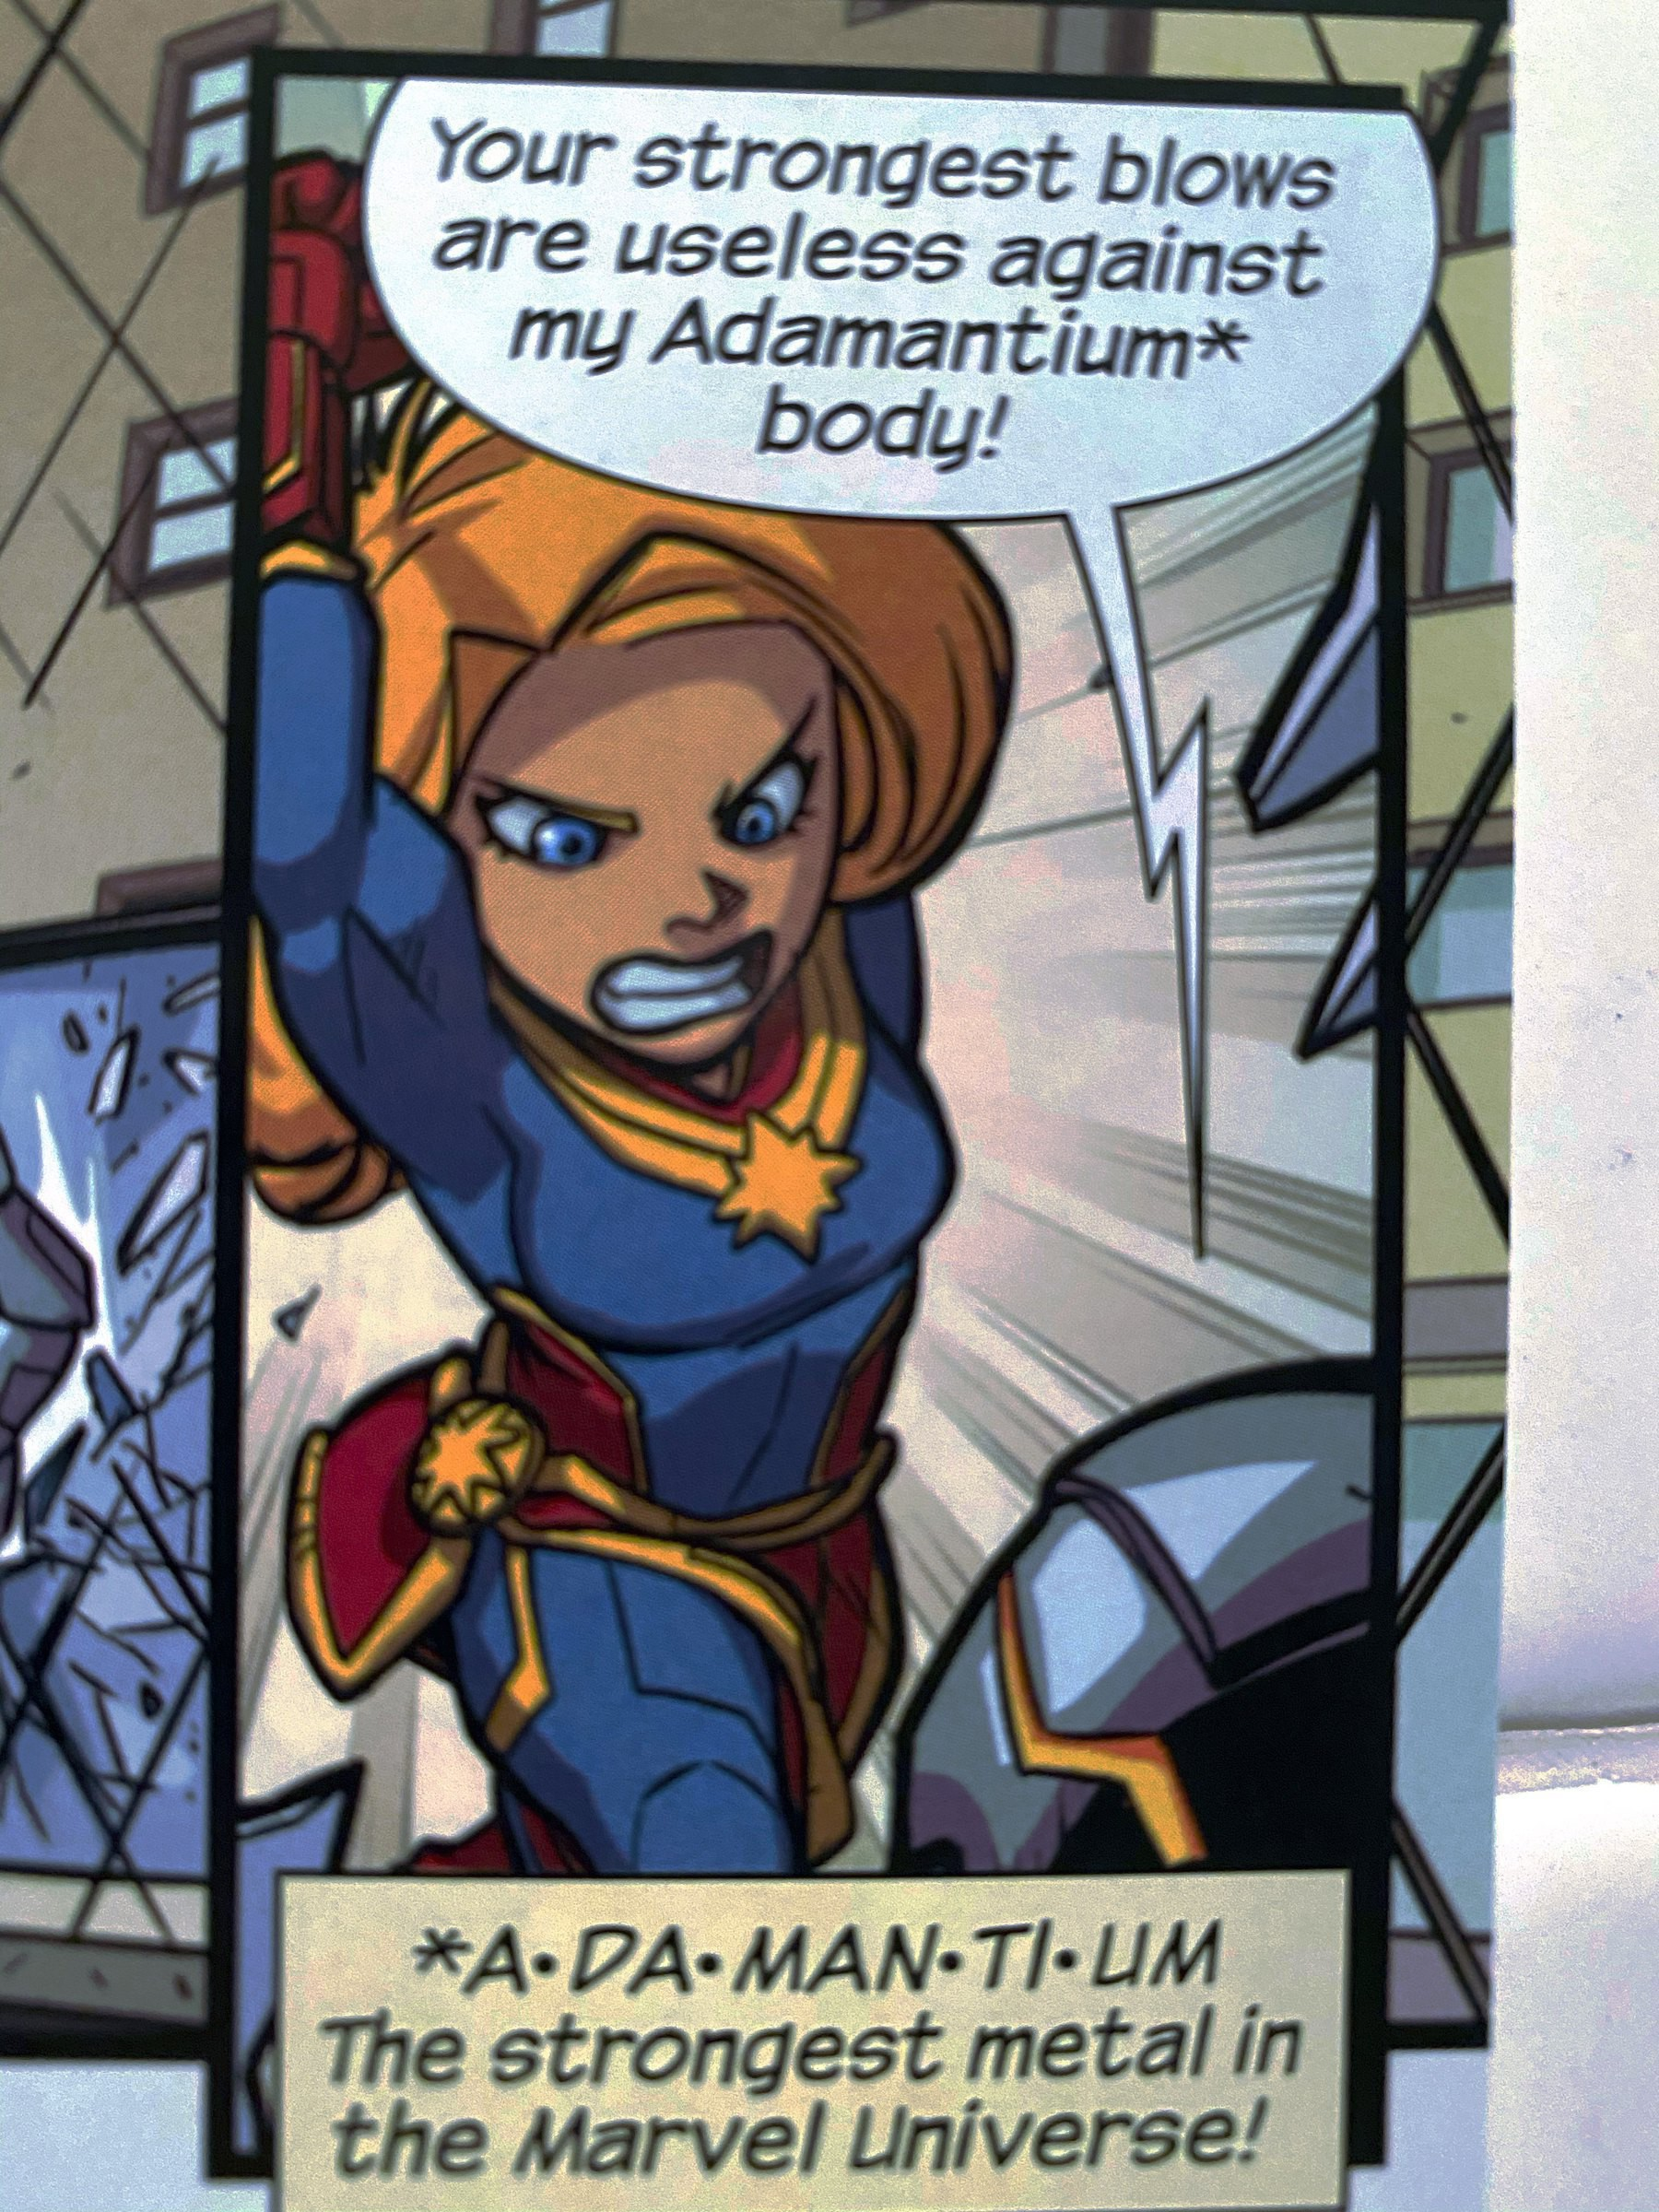 Ultron taunts Captain Marvel that her strongest blows are useless against adamantium!